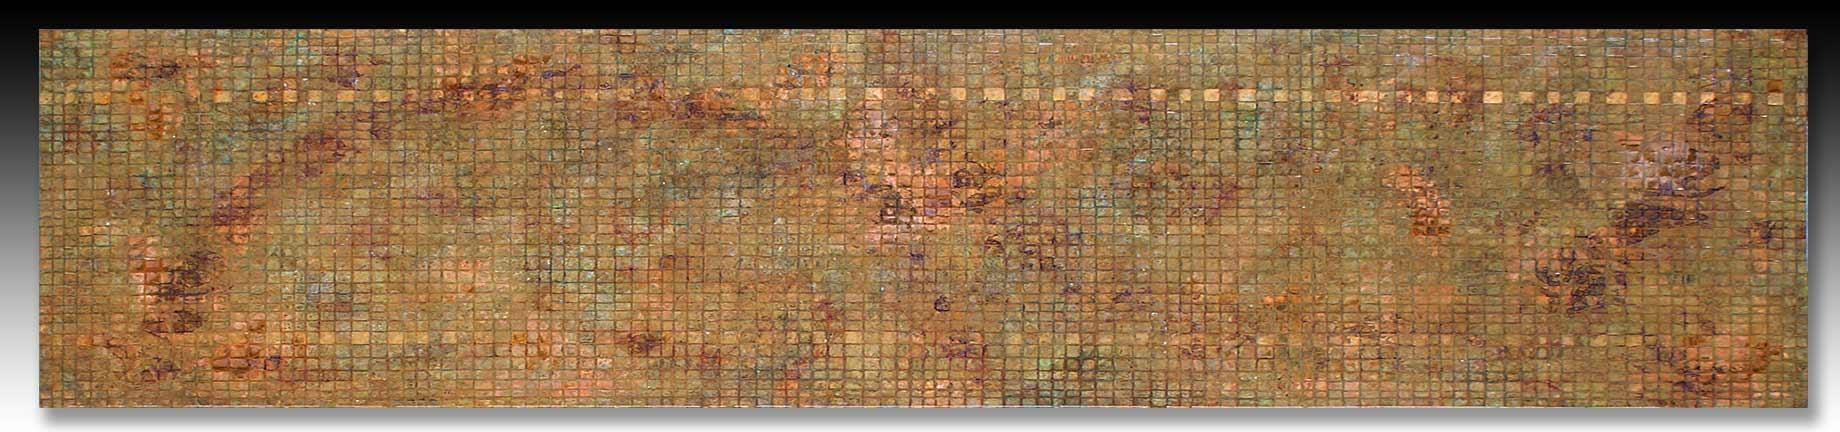 Large Metal Wall Art > Very Large Copper Art Weaving > Copper Wall Art Regarding Large Copper Wall Art (View 5 of 20)